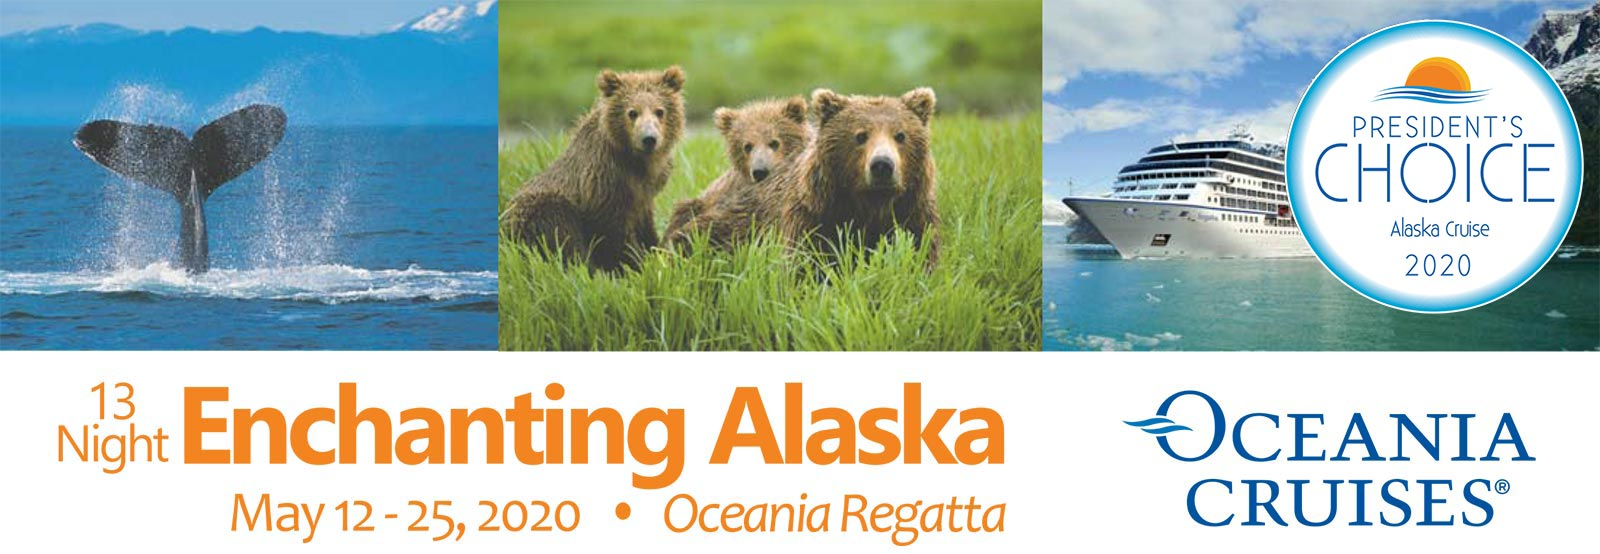 President's Choice Alaska Cruise 2020